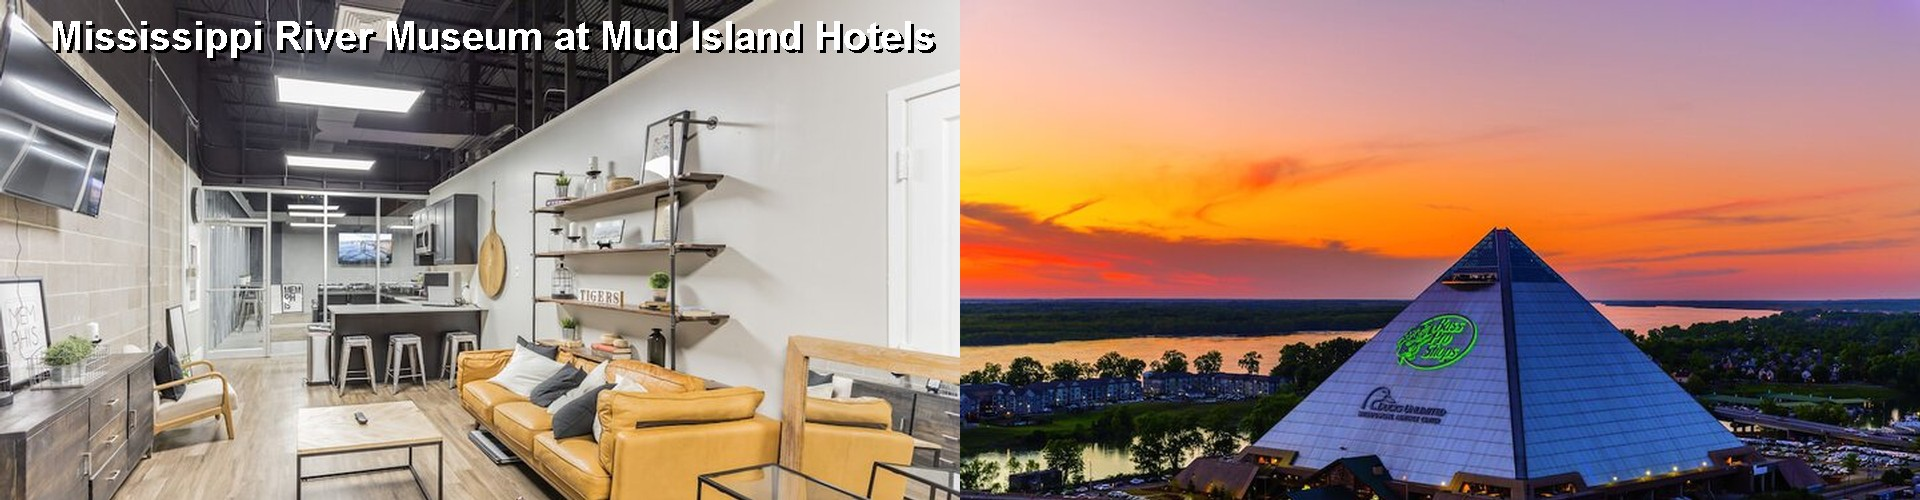 5 Best Hotels near Mississippi River Museum at Mud Island